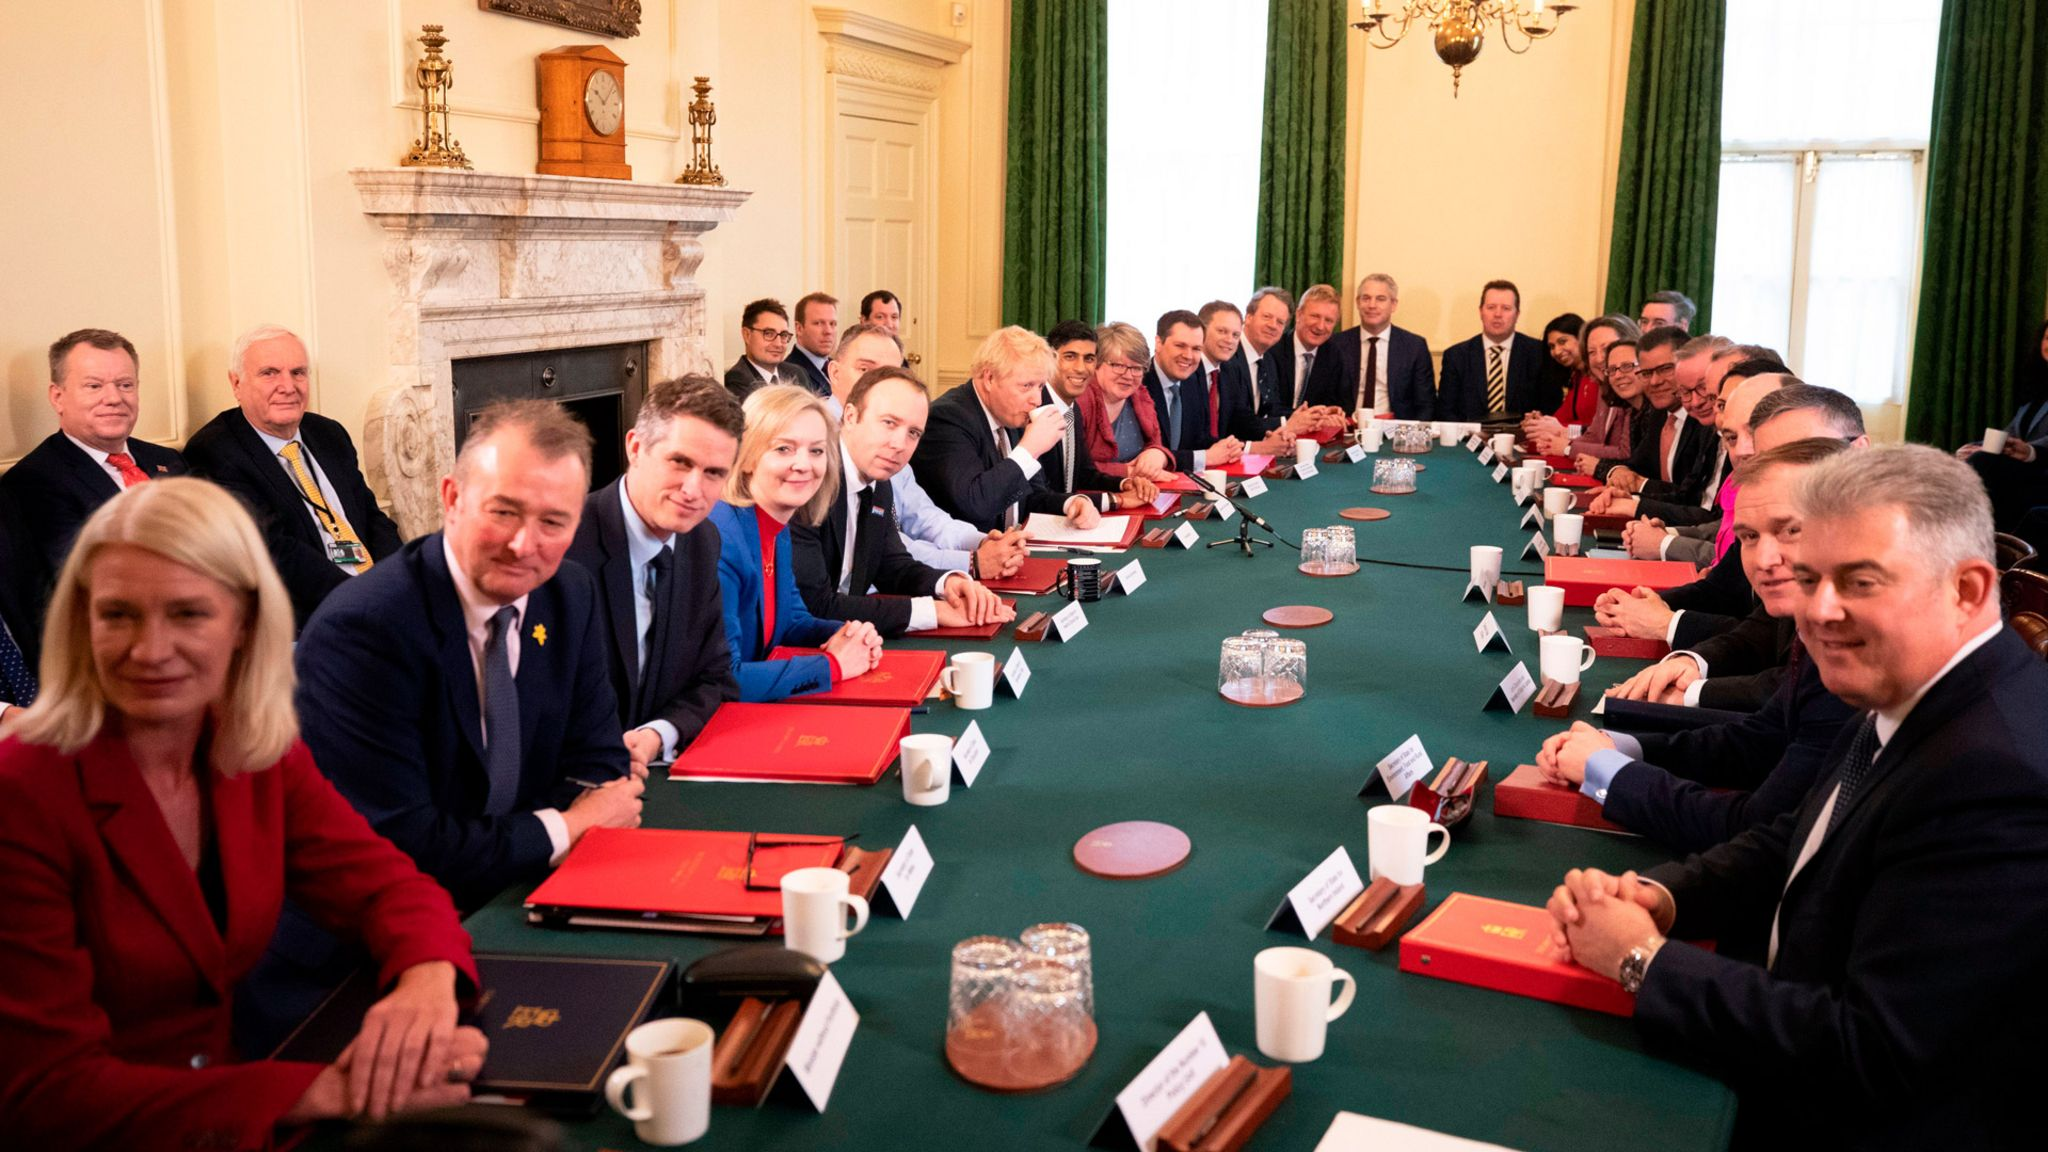 Boris Johnson's first cabinet meeting, February 2020